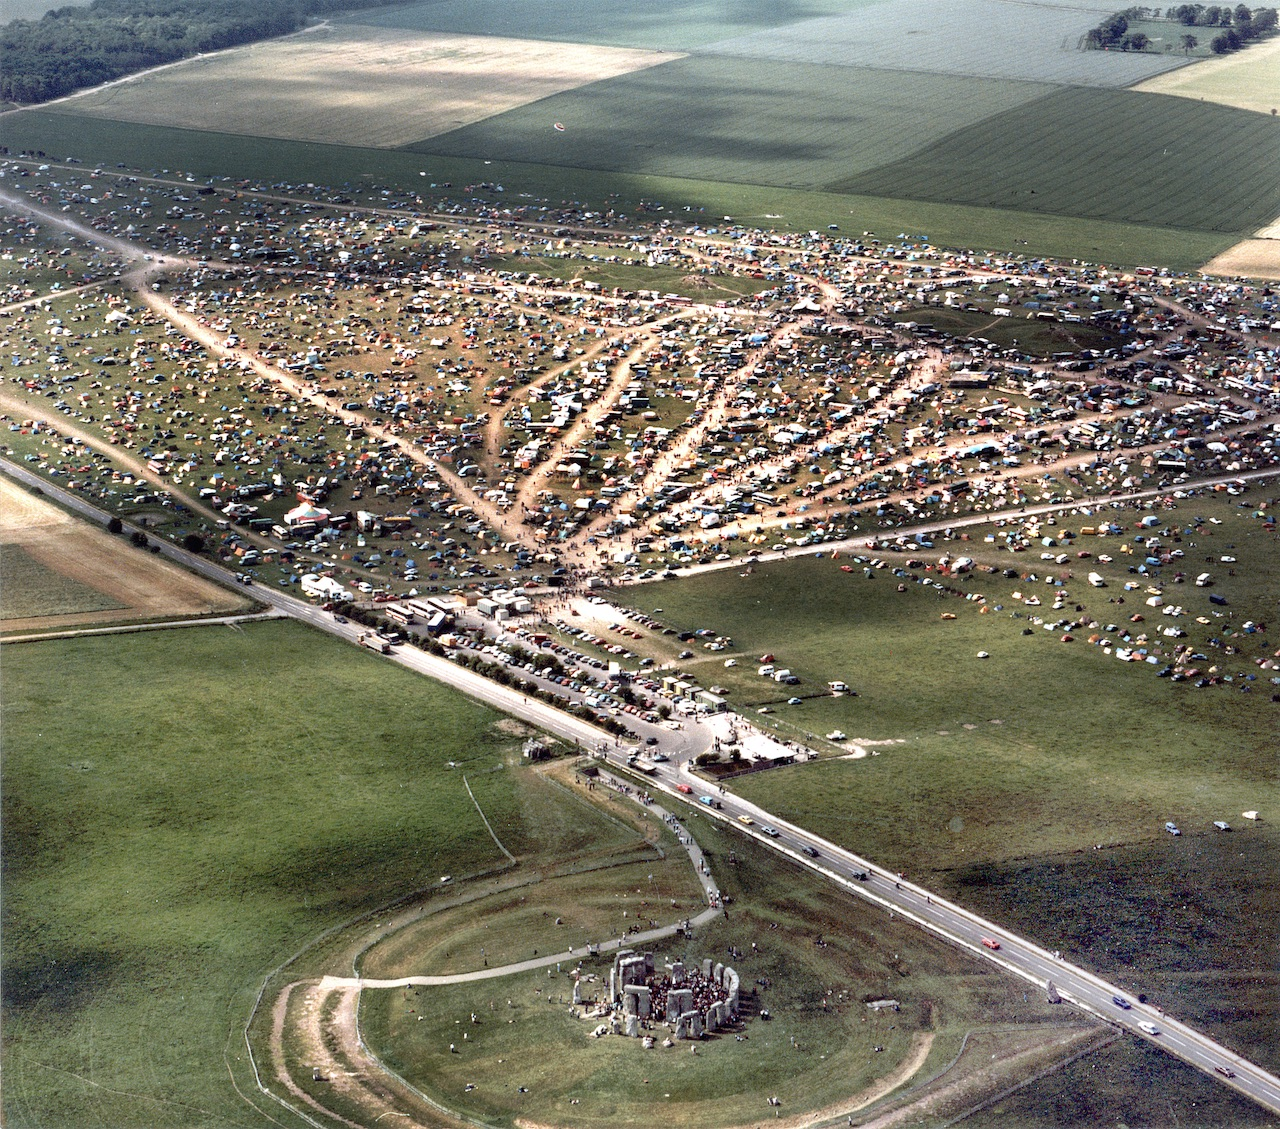 An aerial photo of Stonehenge and the free festival in 1984, as taken from a police helicopter.